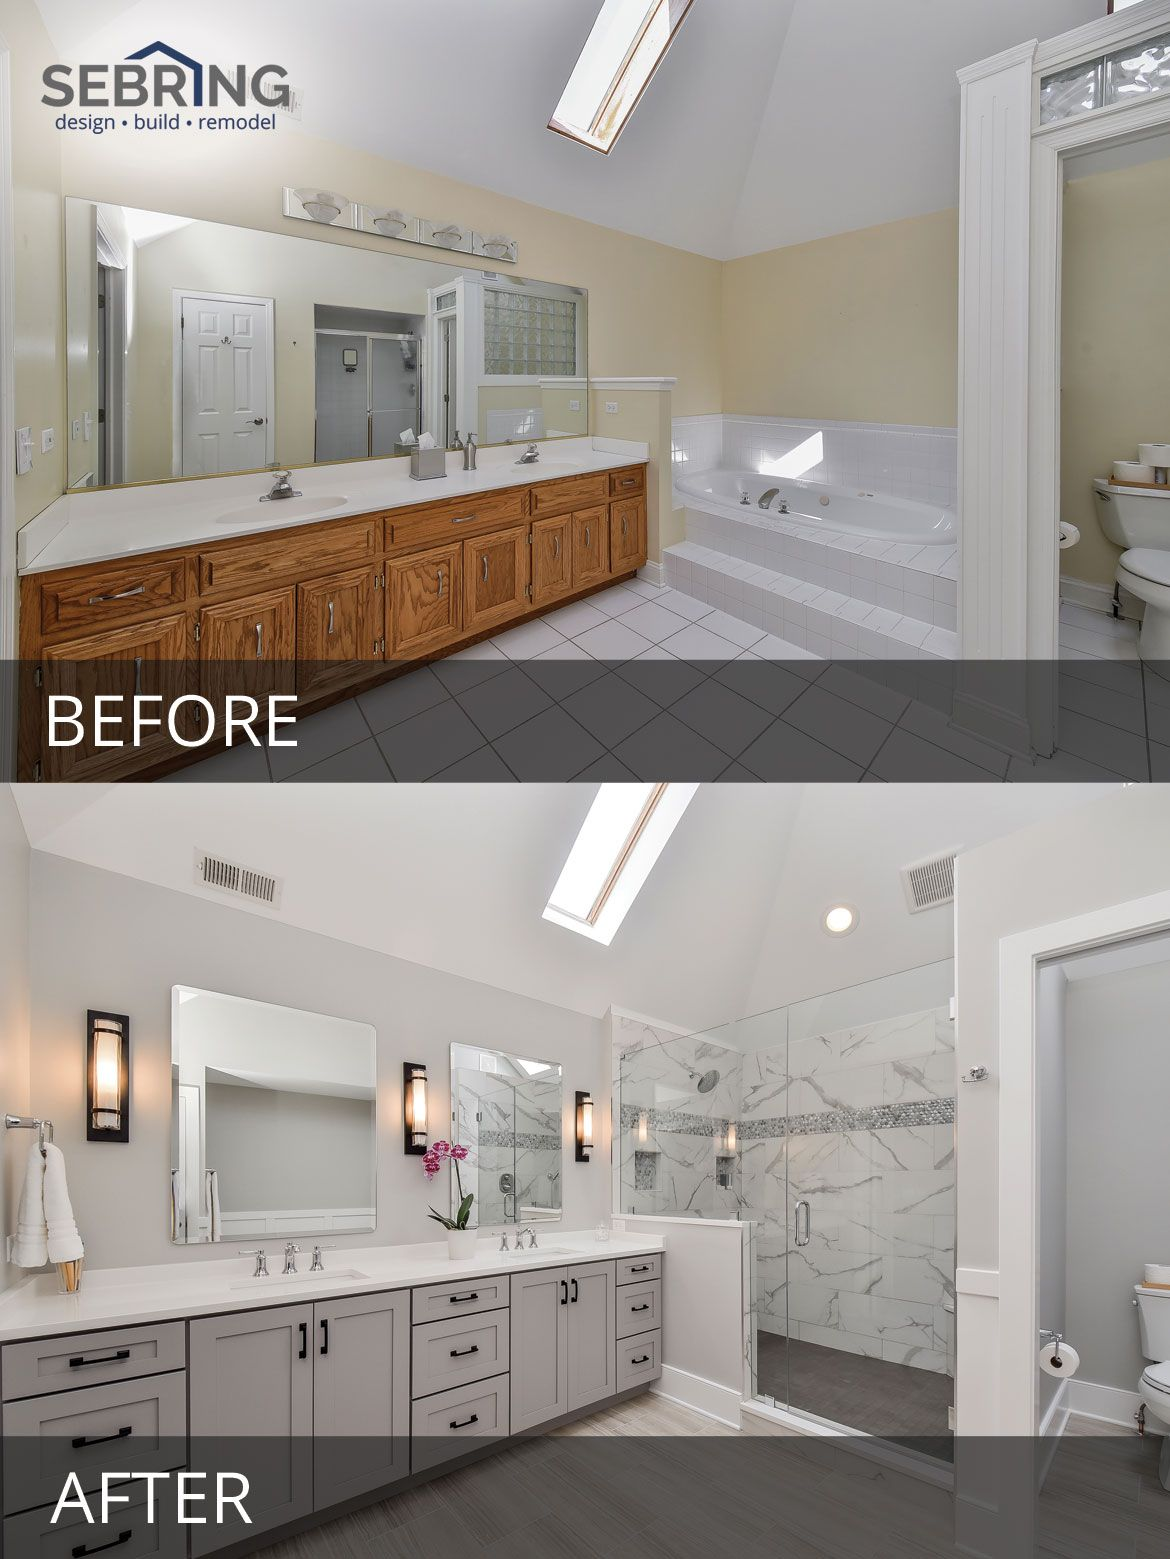 Sarah Ray S Master Bathroom Before After Pictures Cheap Bathroom Remodel Bathrooms Remodel Diy Bathroom Remodel